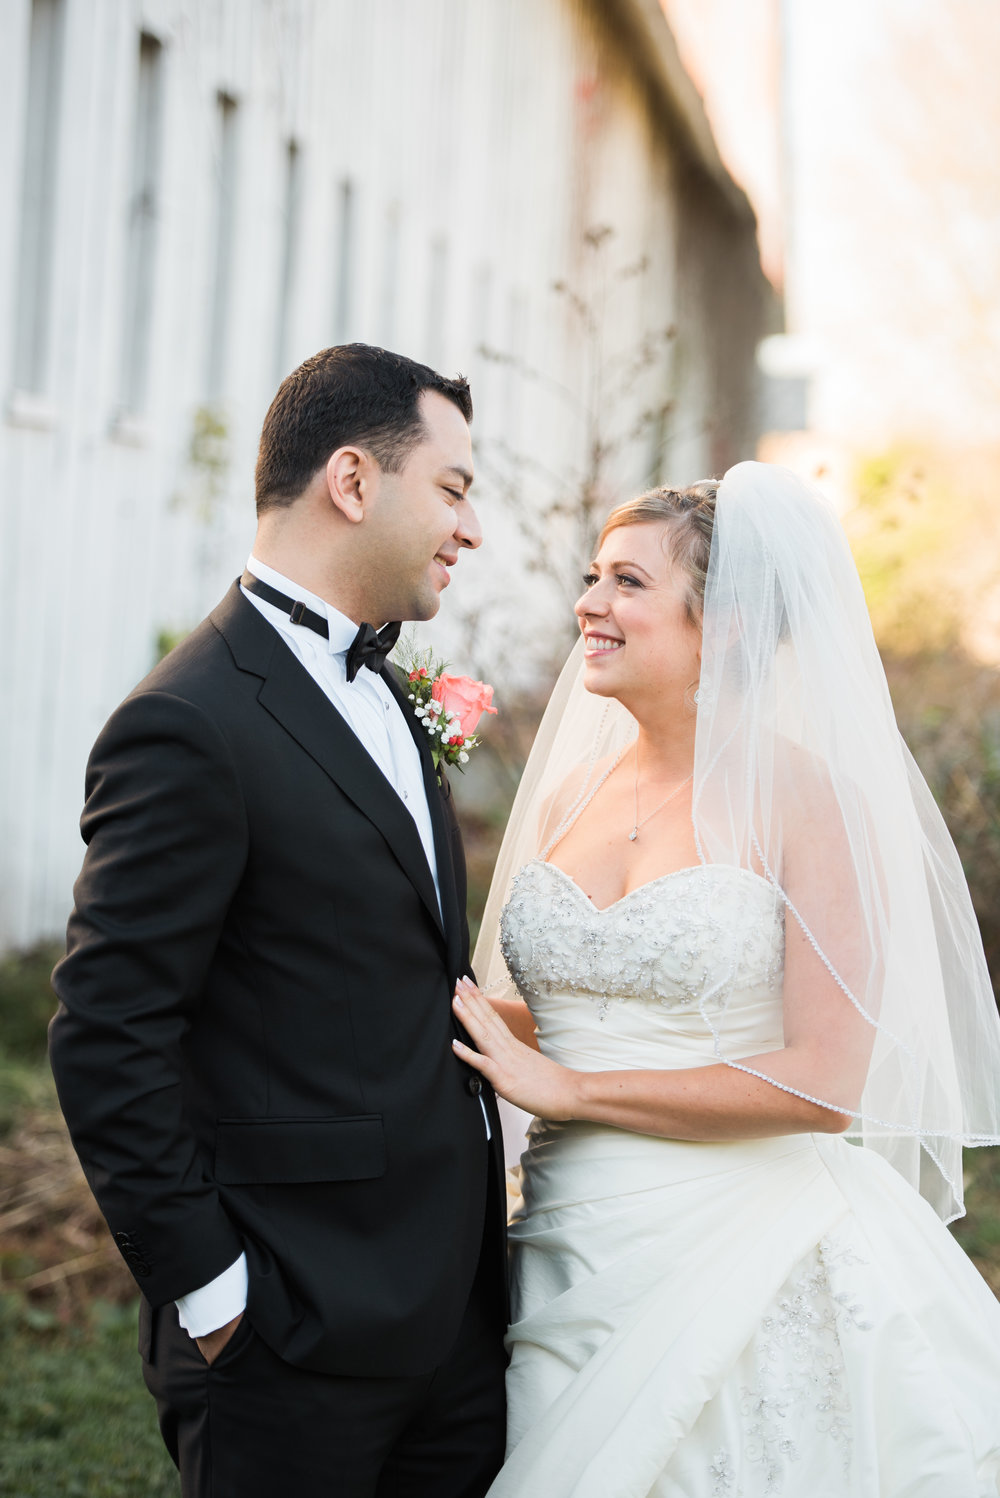 This couple requested a soft, natural light lookfor their wedding photos. Their final images were exactly what they'd envisioned.